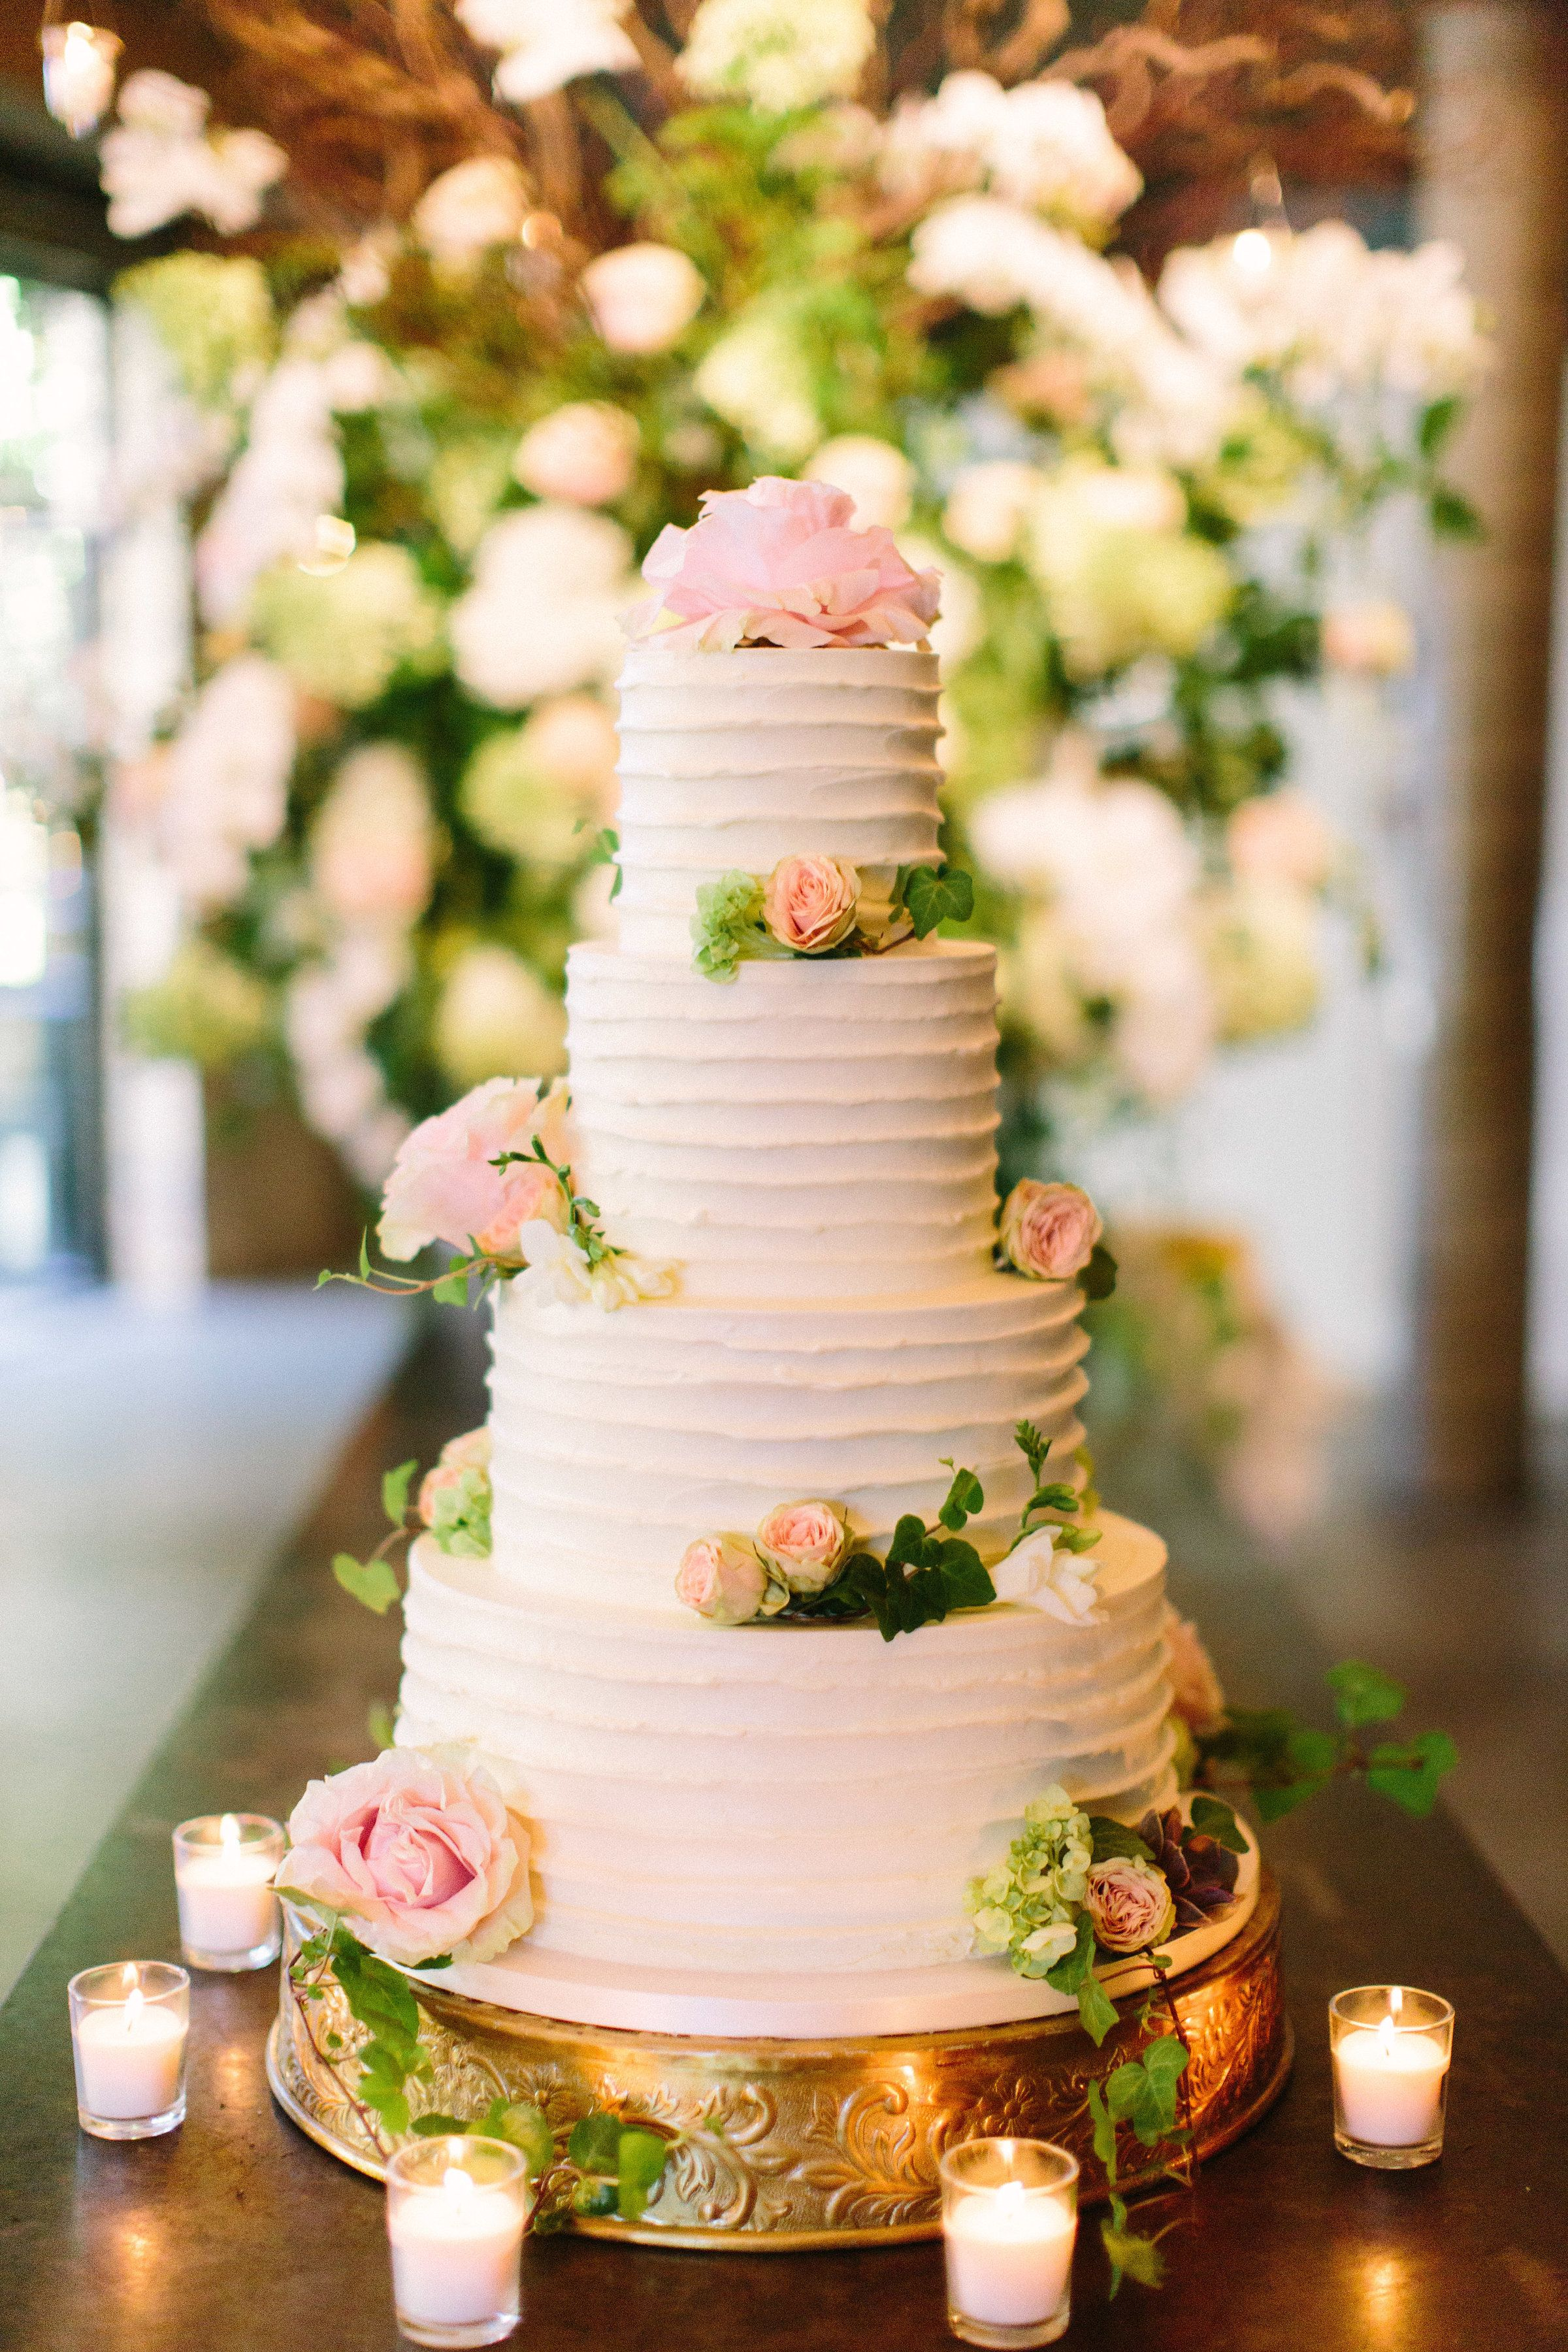 Beautiful Four Tiered Textured Buttercream Wedding Cake With Fresh